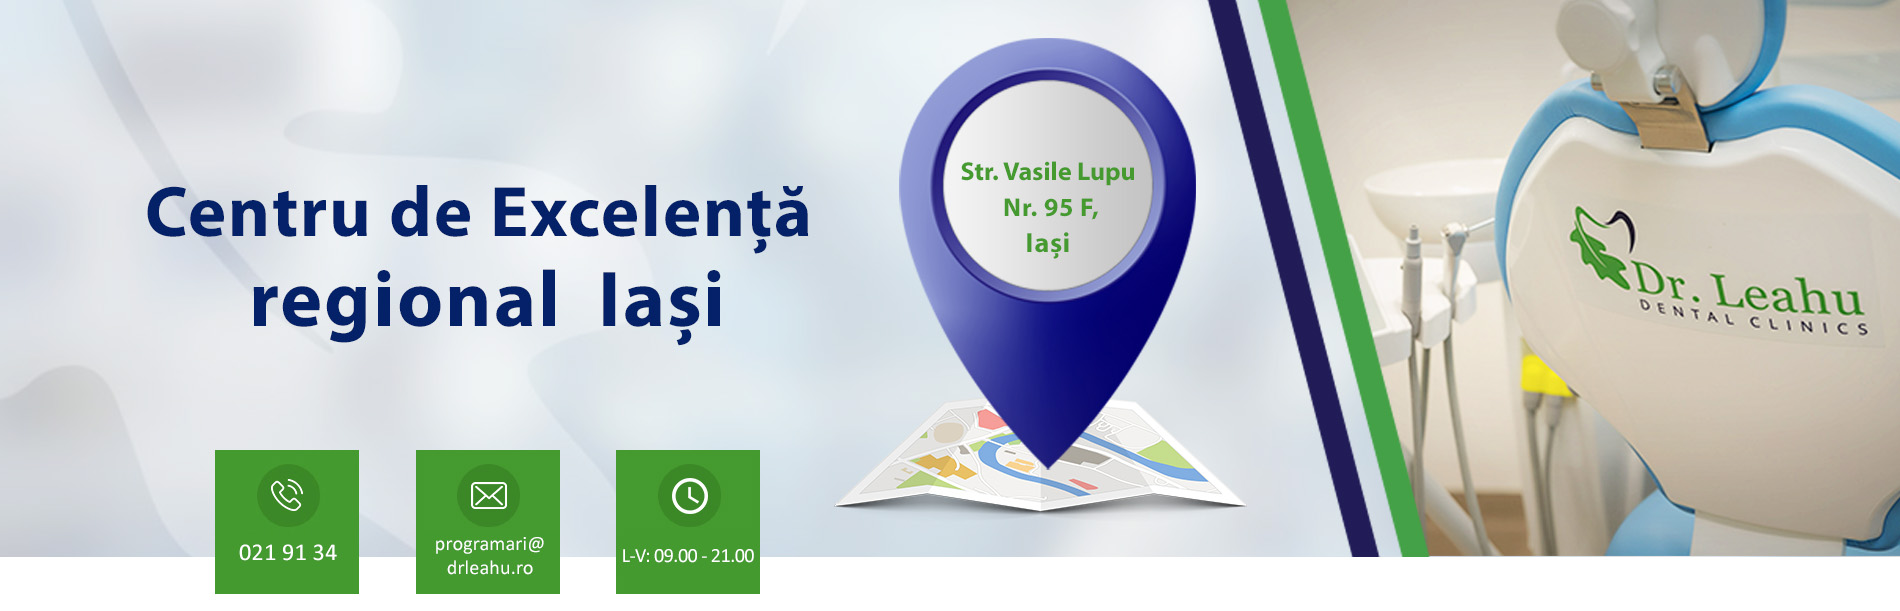 Banner cabinet si contact clinica stomatologica Iasi - Dr. Leahu